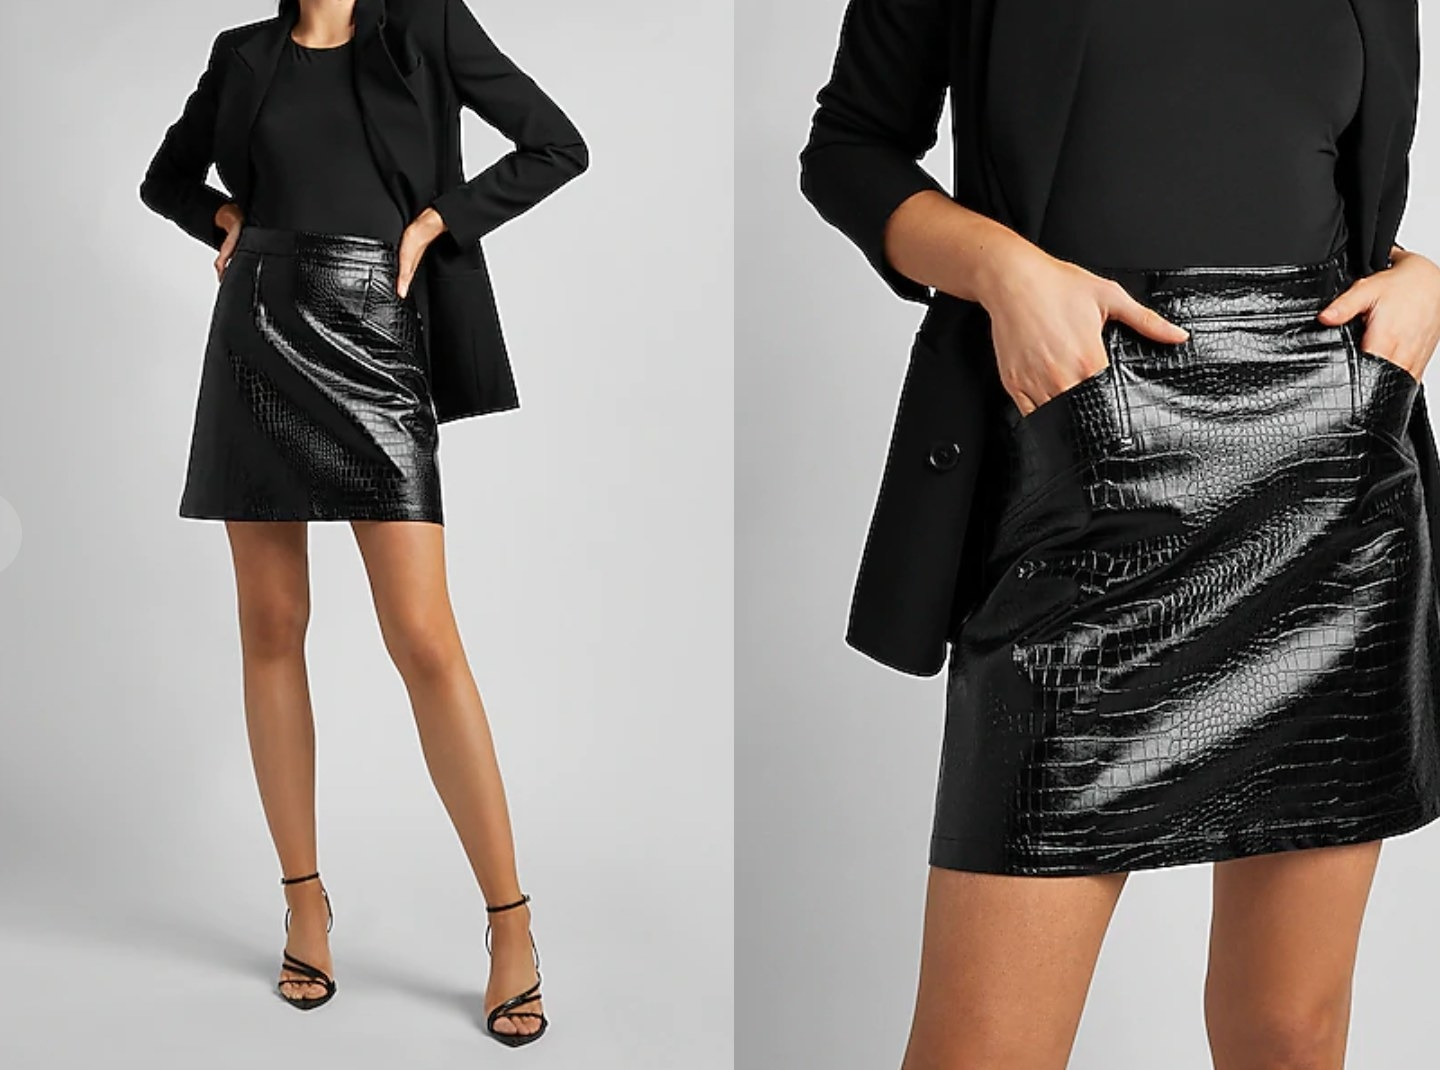 model wearing the skirt with their hands in the pockets